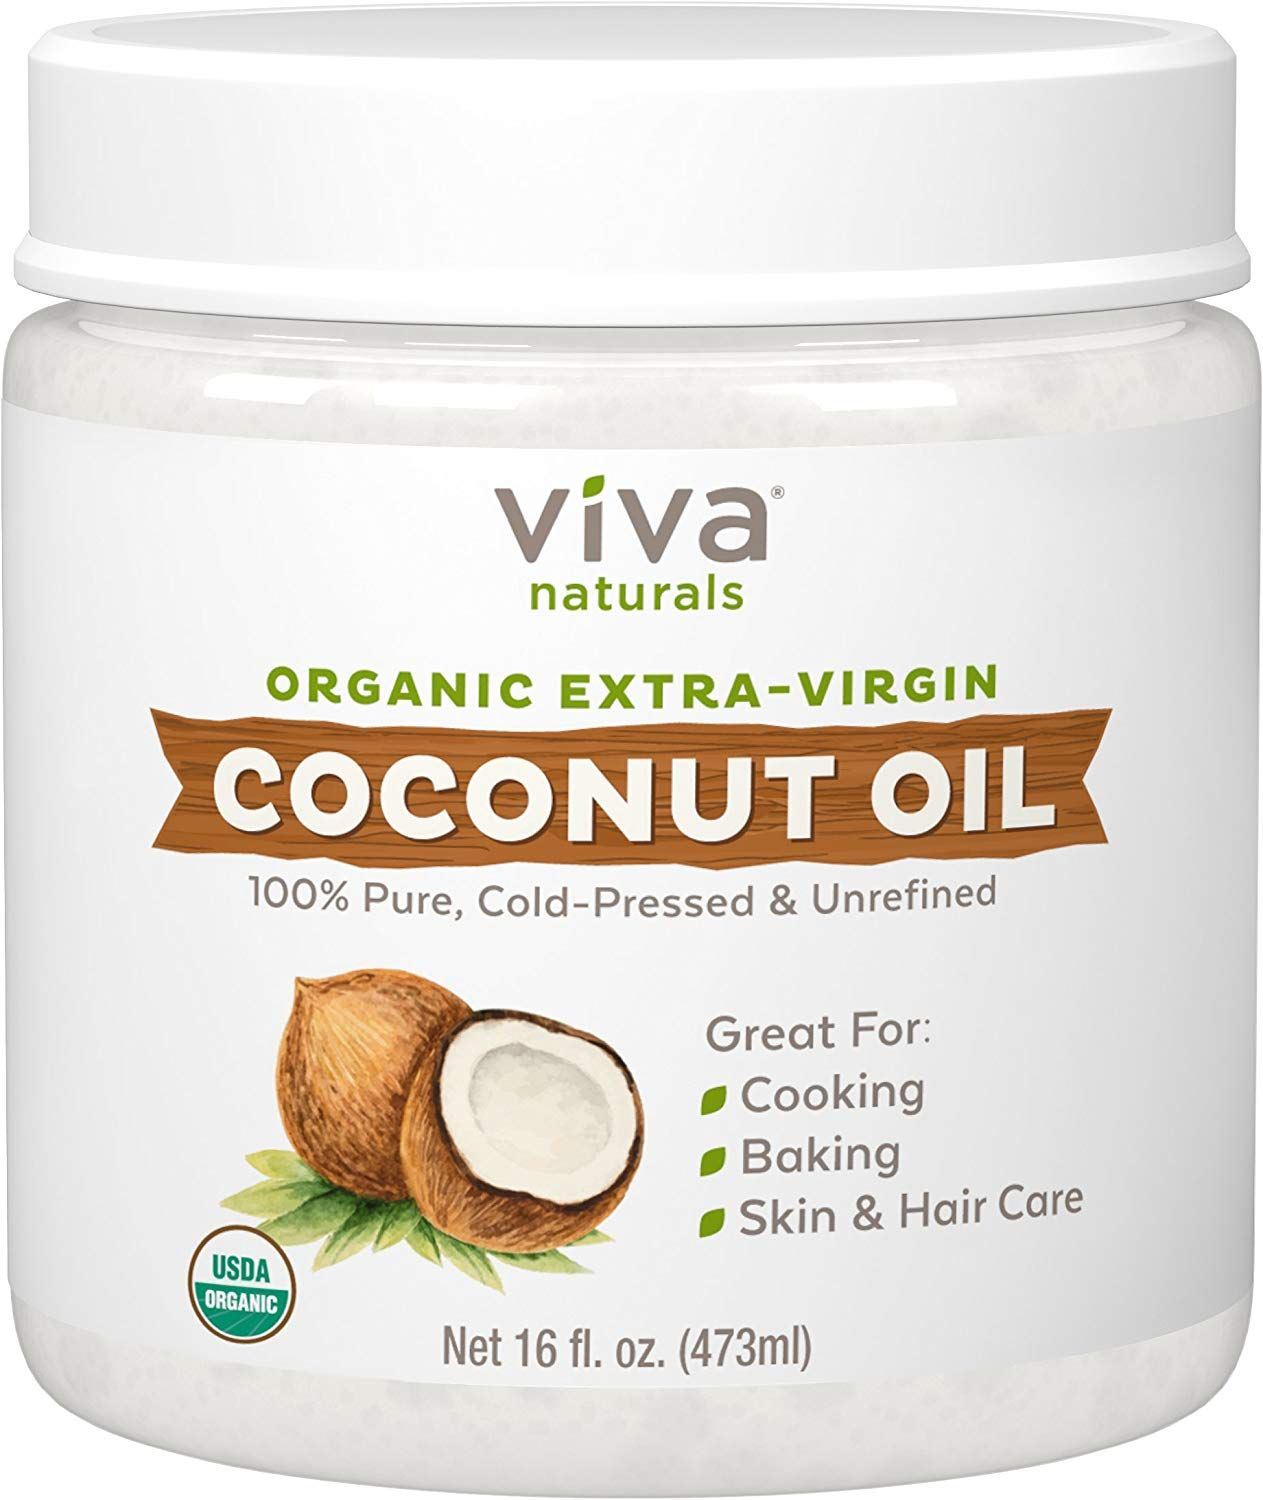 10 Best Pure Coconut Oils For Hair And Skin In India 2020 Coconut Oil For Skin Coconut Oil Brands Best Coconut Oil